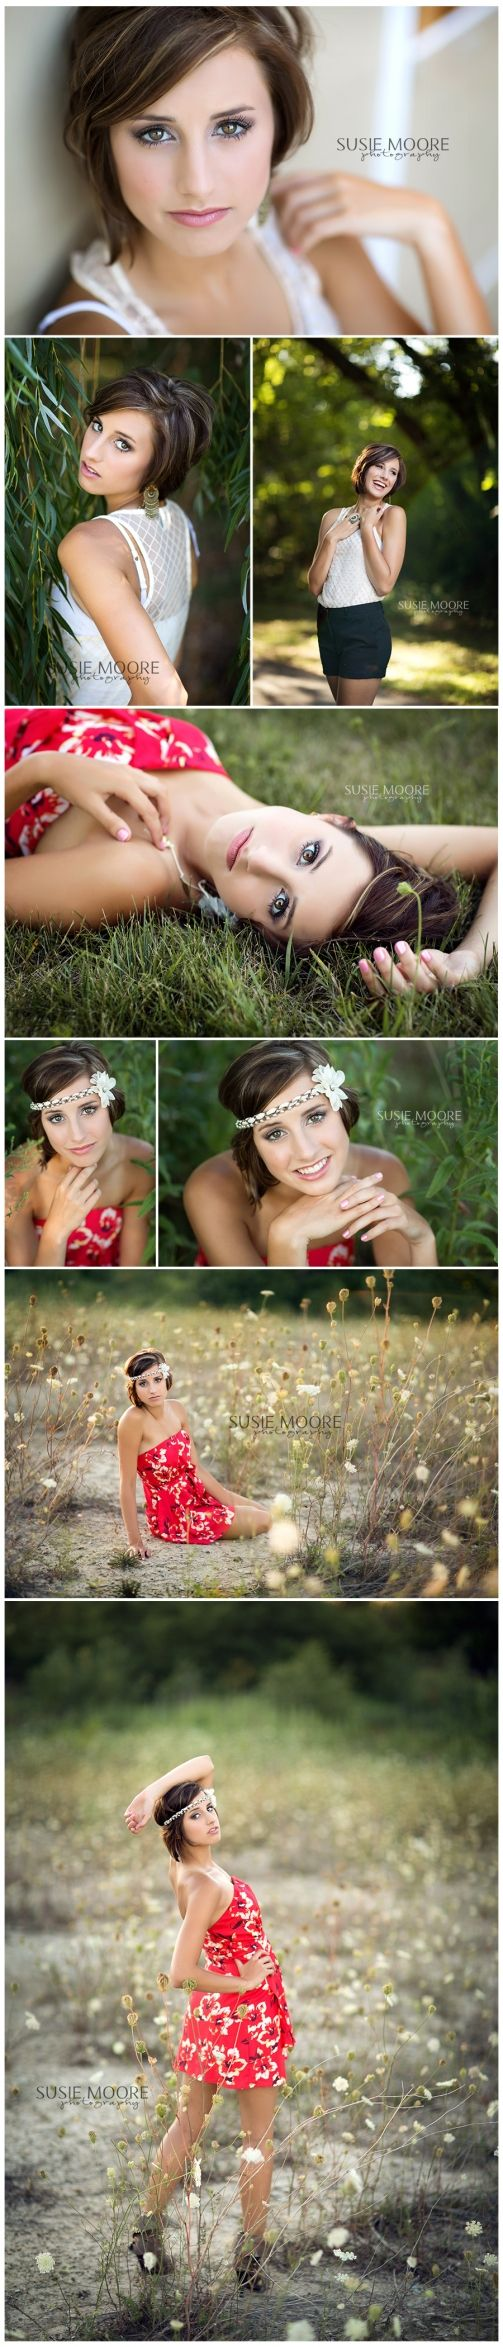 Kaylie | Chicago Senior Photography | Susie Moore Photography